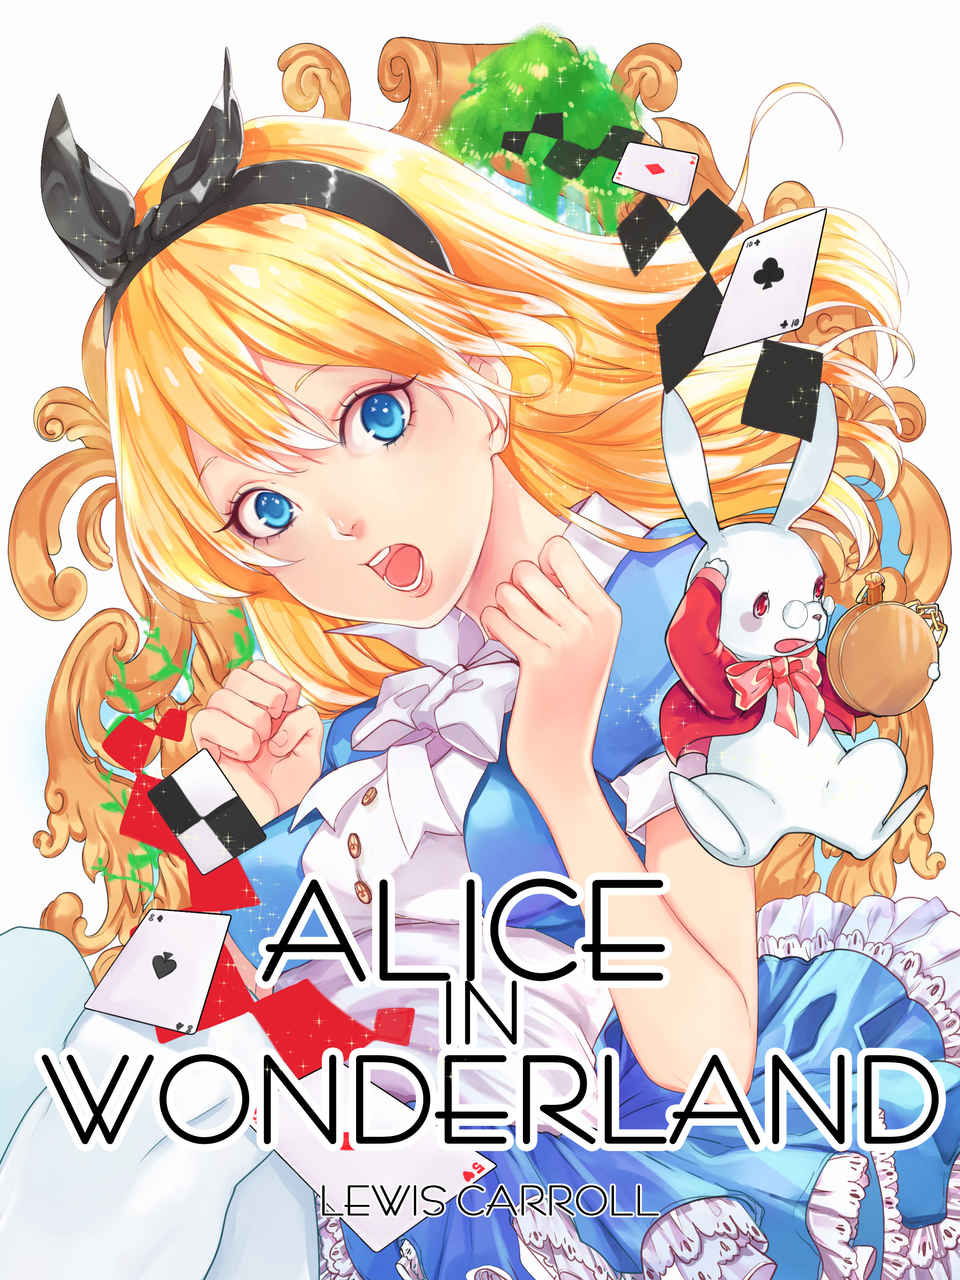 Devita Krisanti/Alice in Wonderland